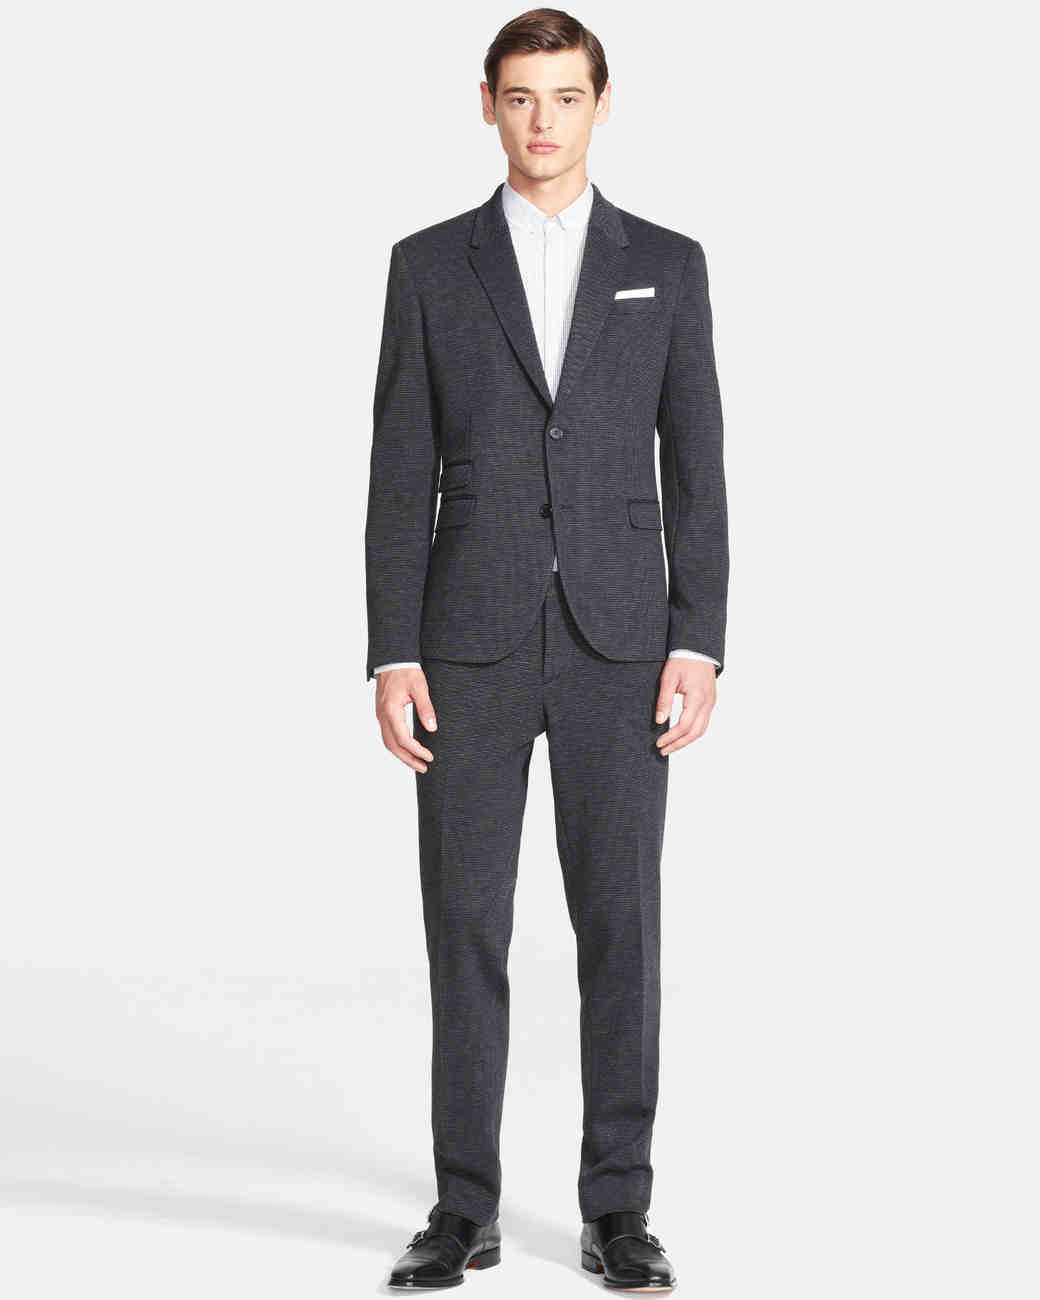 12 Best Fall Suits for the Groom | Martha Stewart Weddings